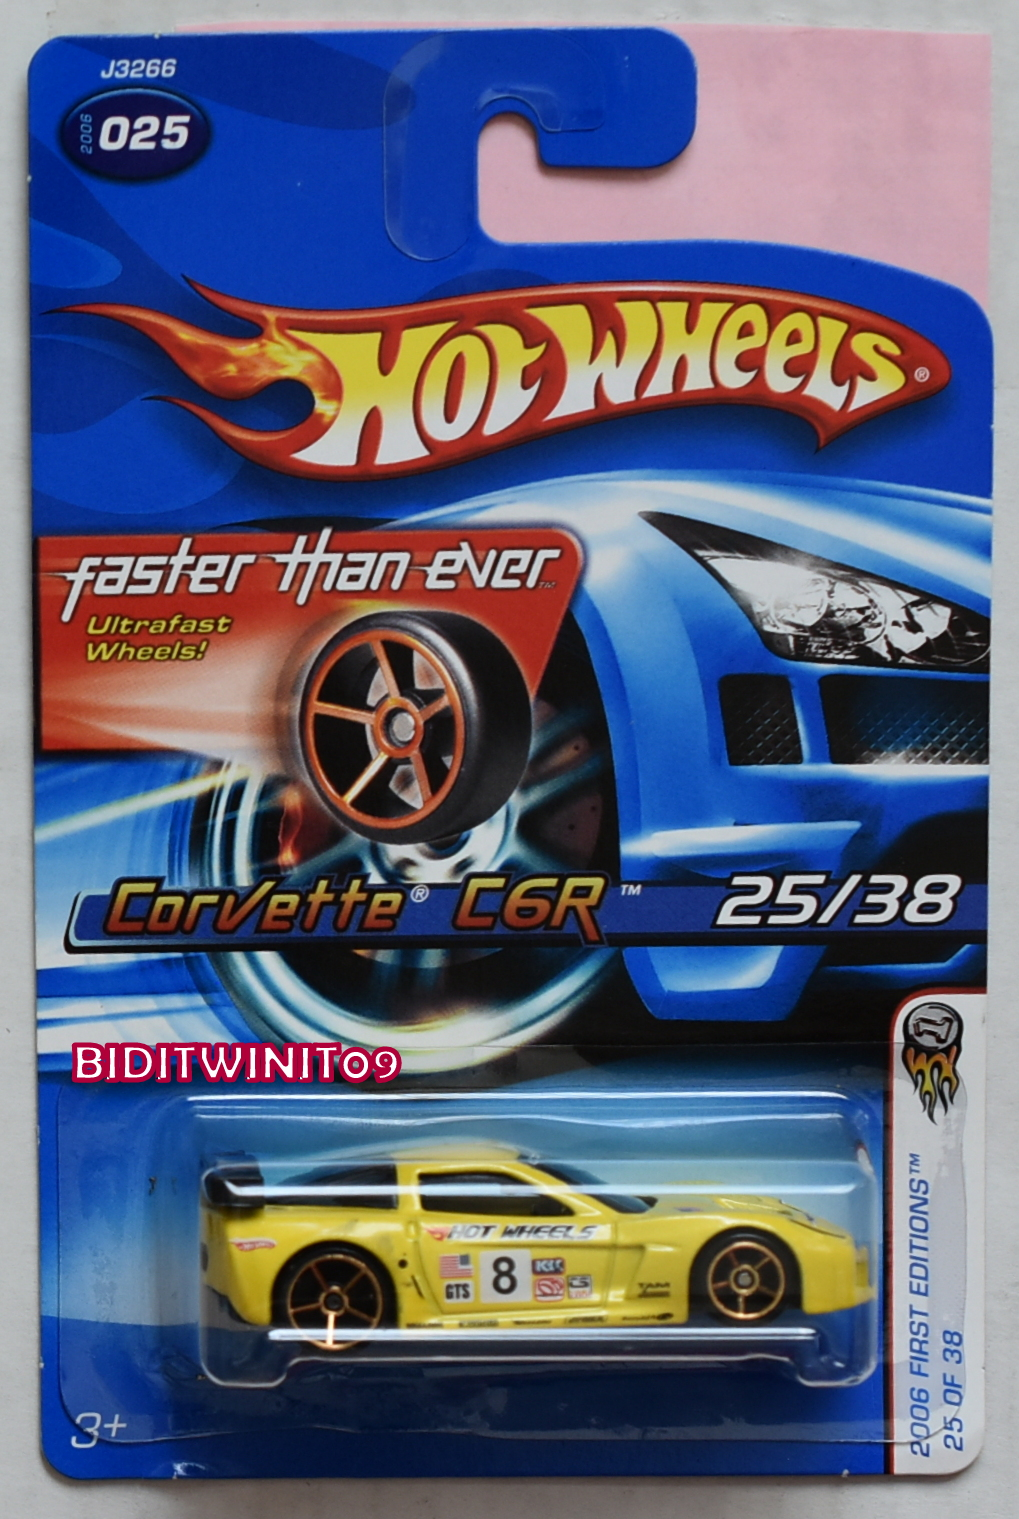 HOT WHEELS 2006 FIRST EDITIONS FTE CORVETTE C6R VARIATION E+